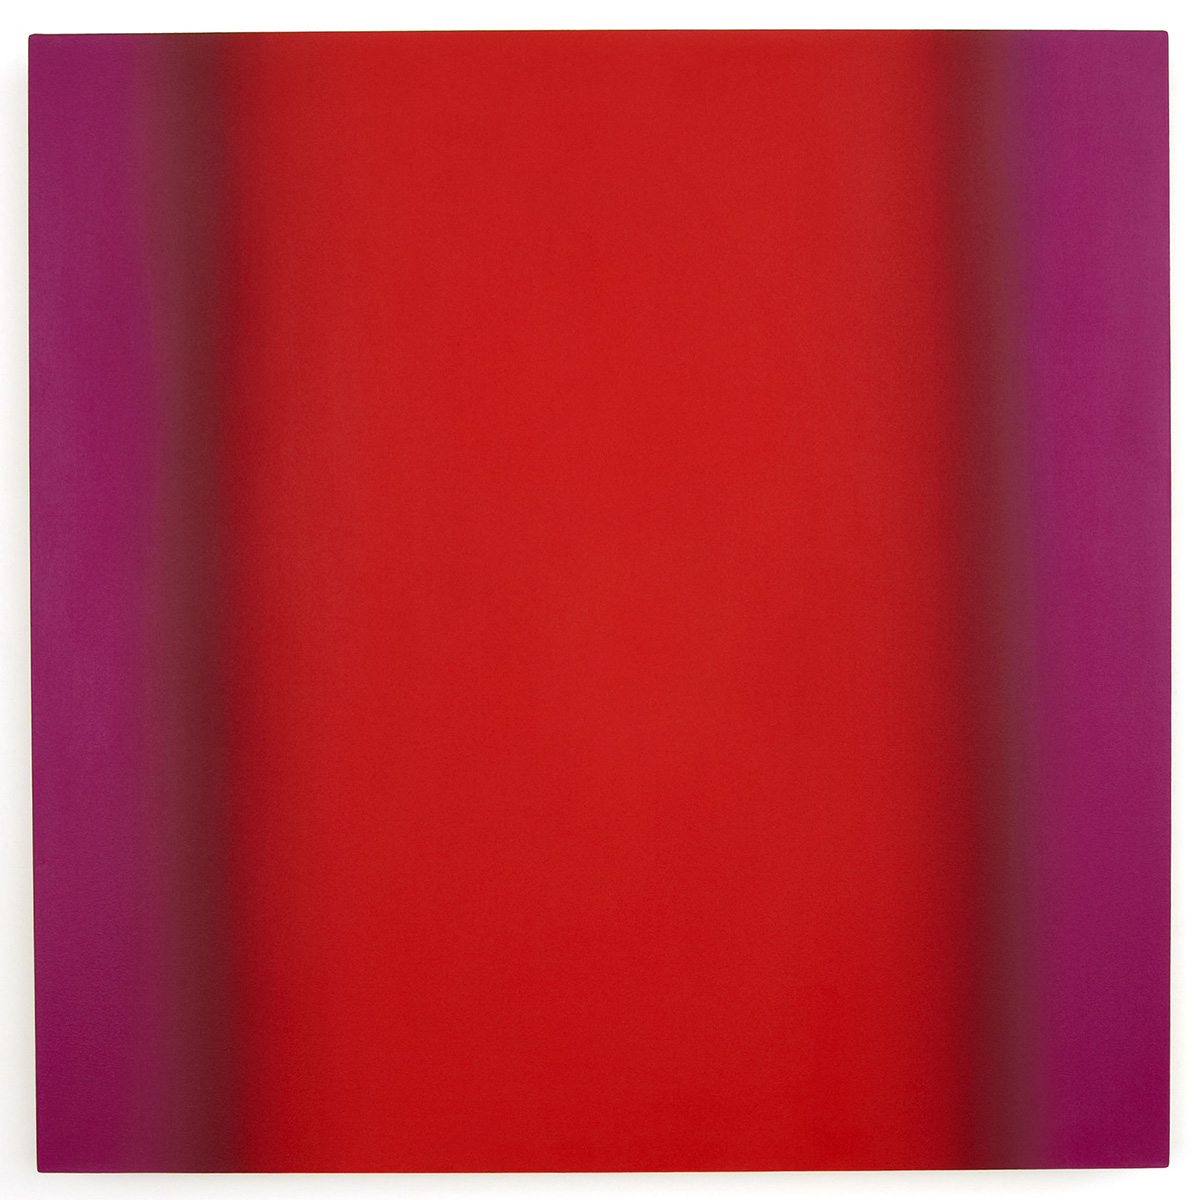 Red Green 4-S4848 (Red Magenta), Interplay Series, 2013, oil on canvas on custom beveled stretcher, 48 x 48 in. (122 x 122 cm.)